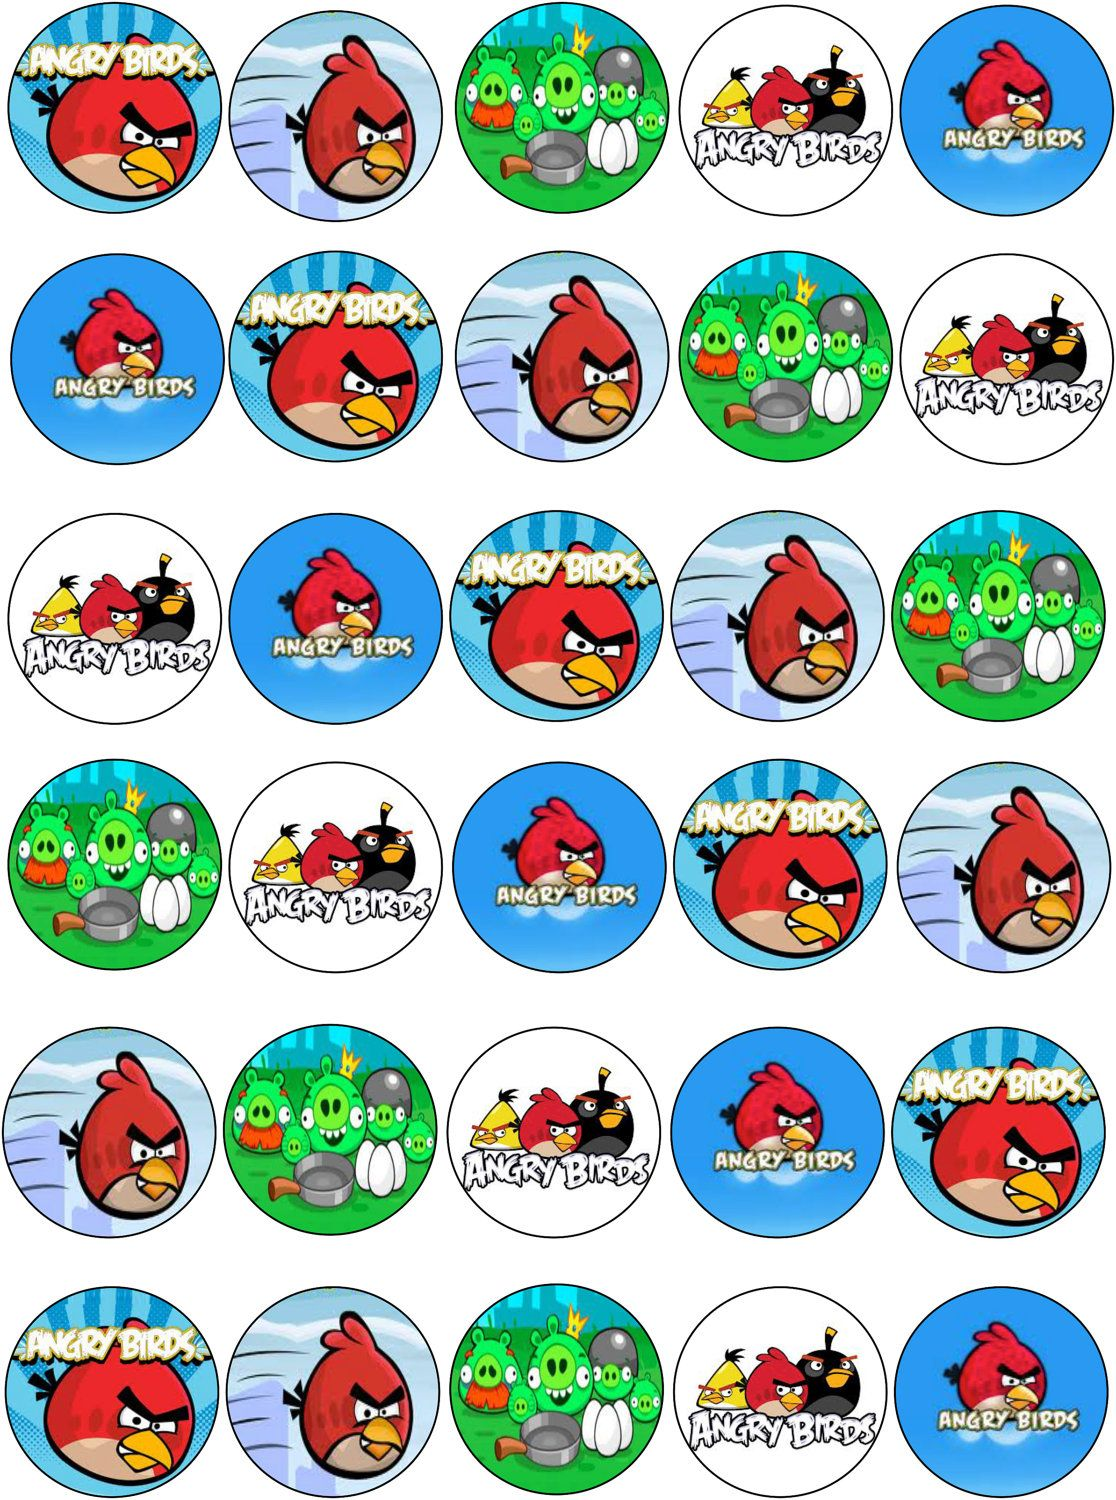 BakeBoss - Cake Decorating Baking Supplies New Angry birds edible cupcake images